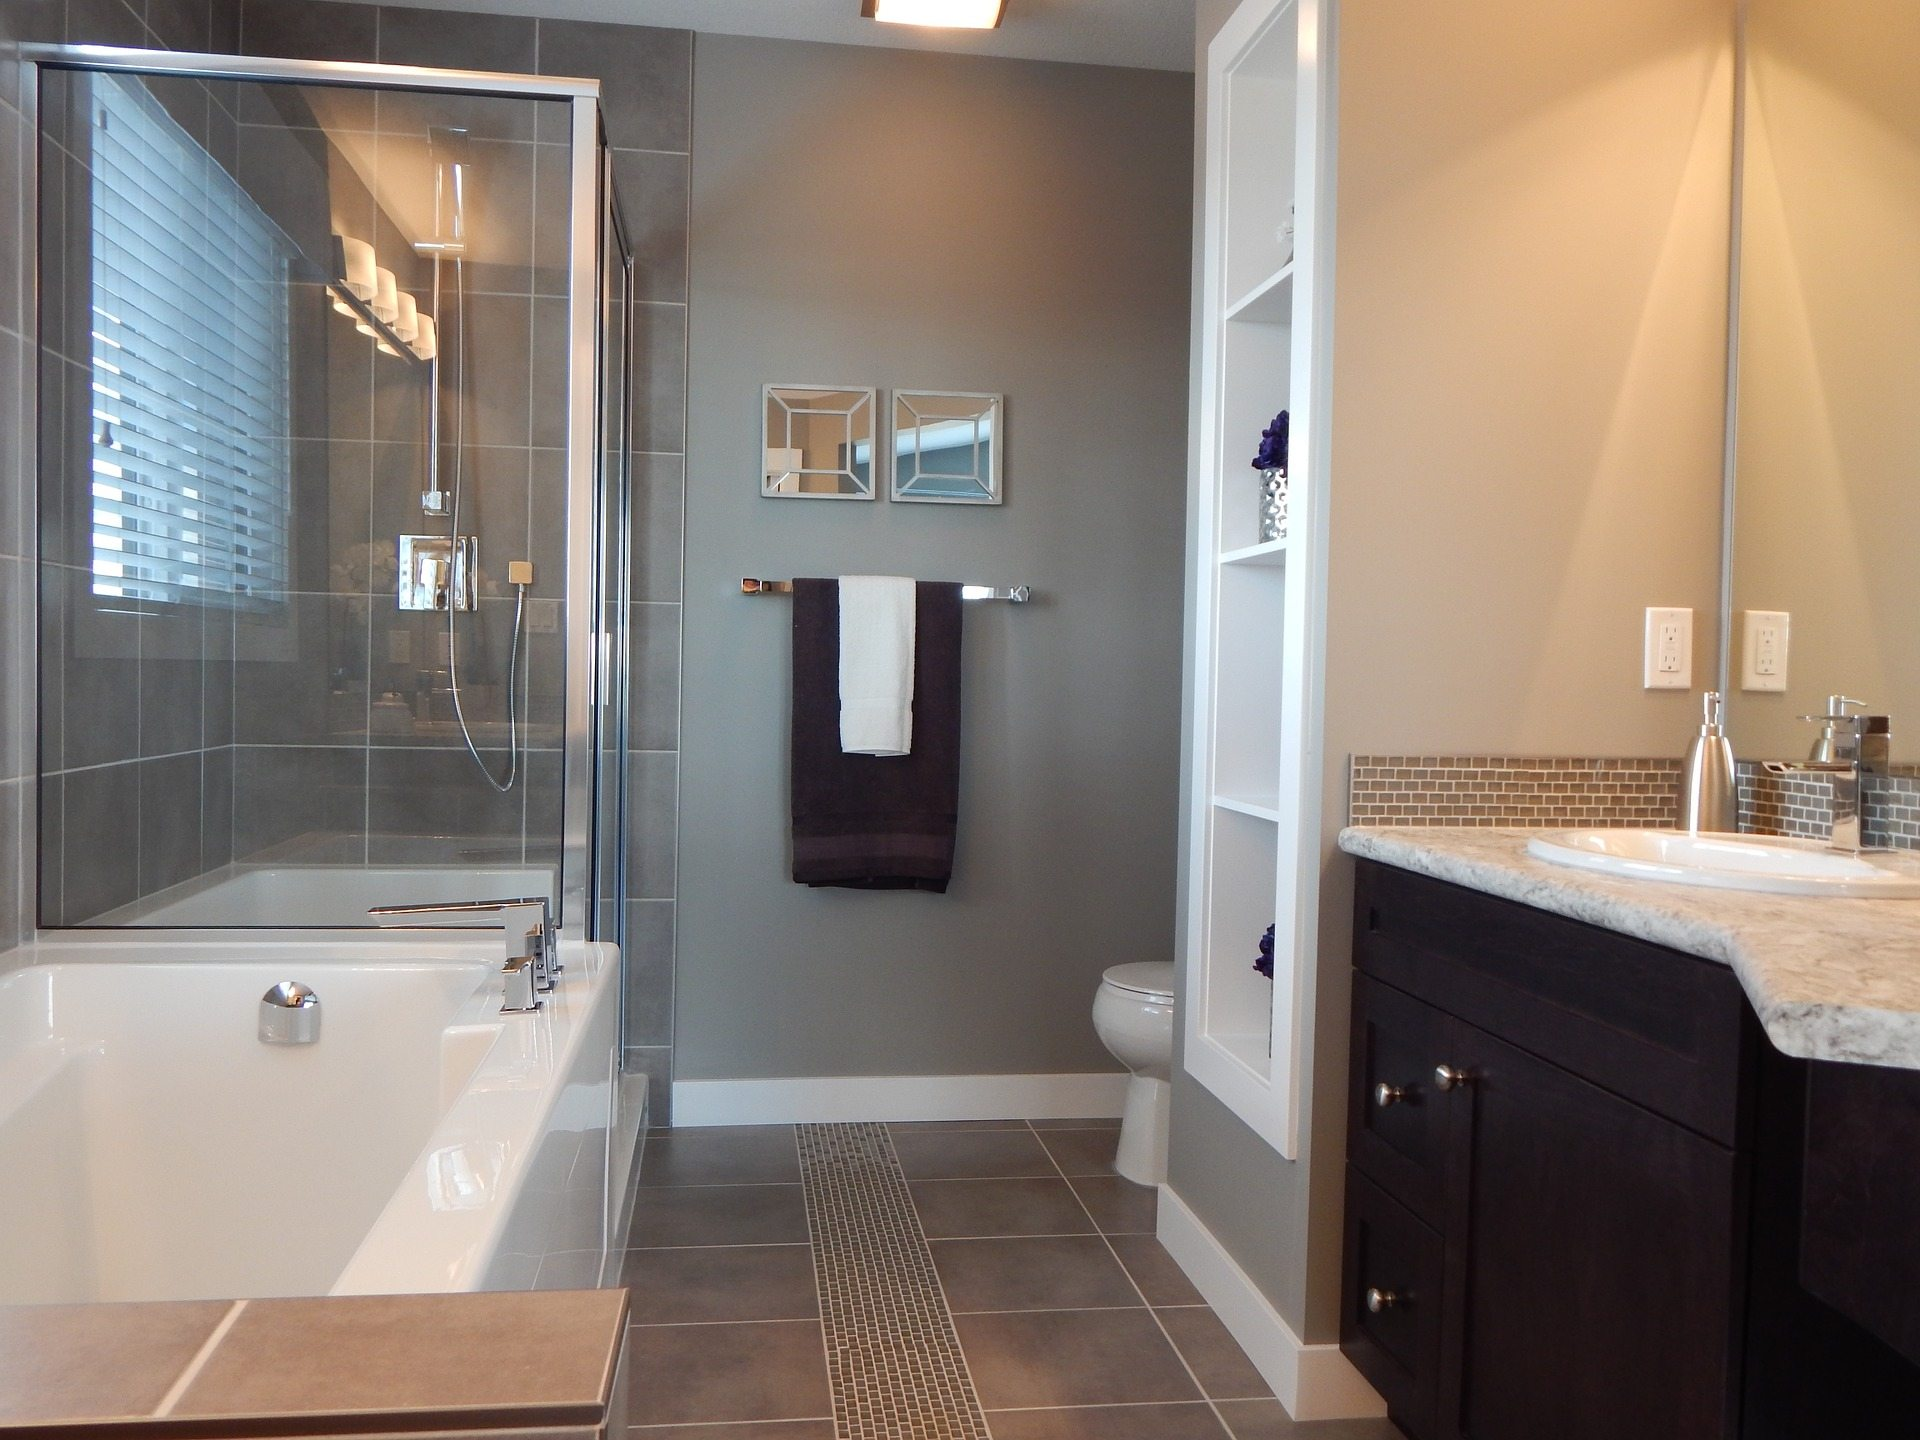 Easy Bathroom Remodeling Ideas The Money Pit - Easy bathroom remodel